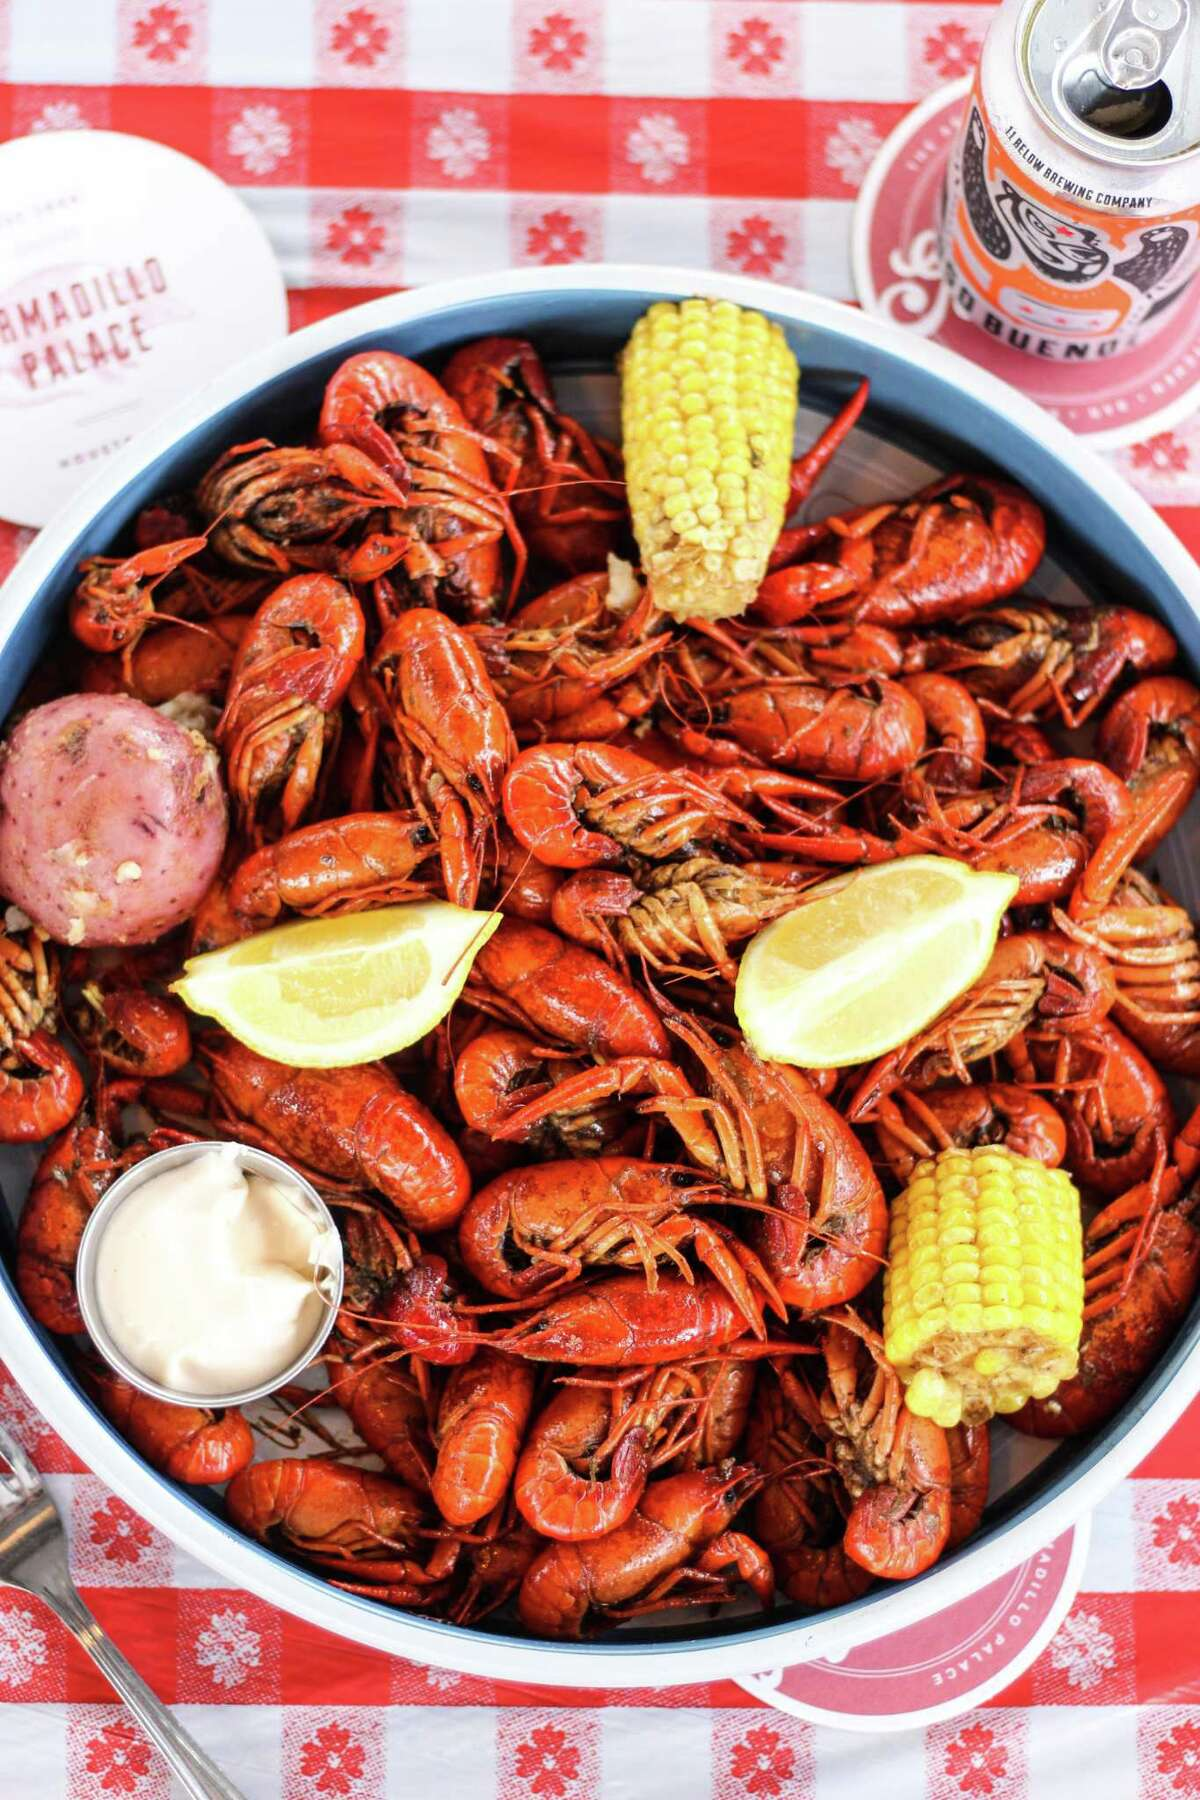 Starting Friday, Goode Company will be serving crawfish from noon until sold out.